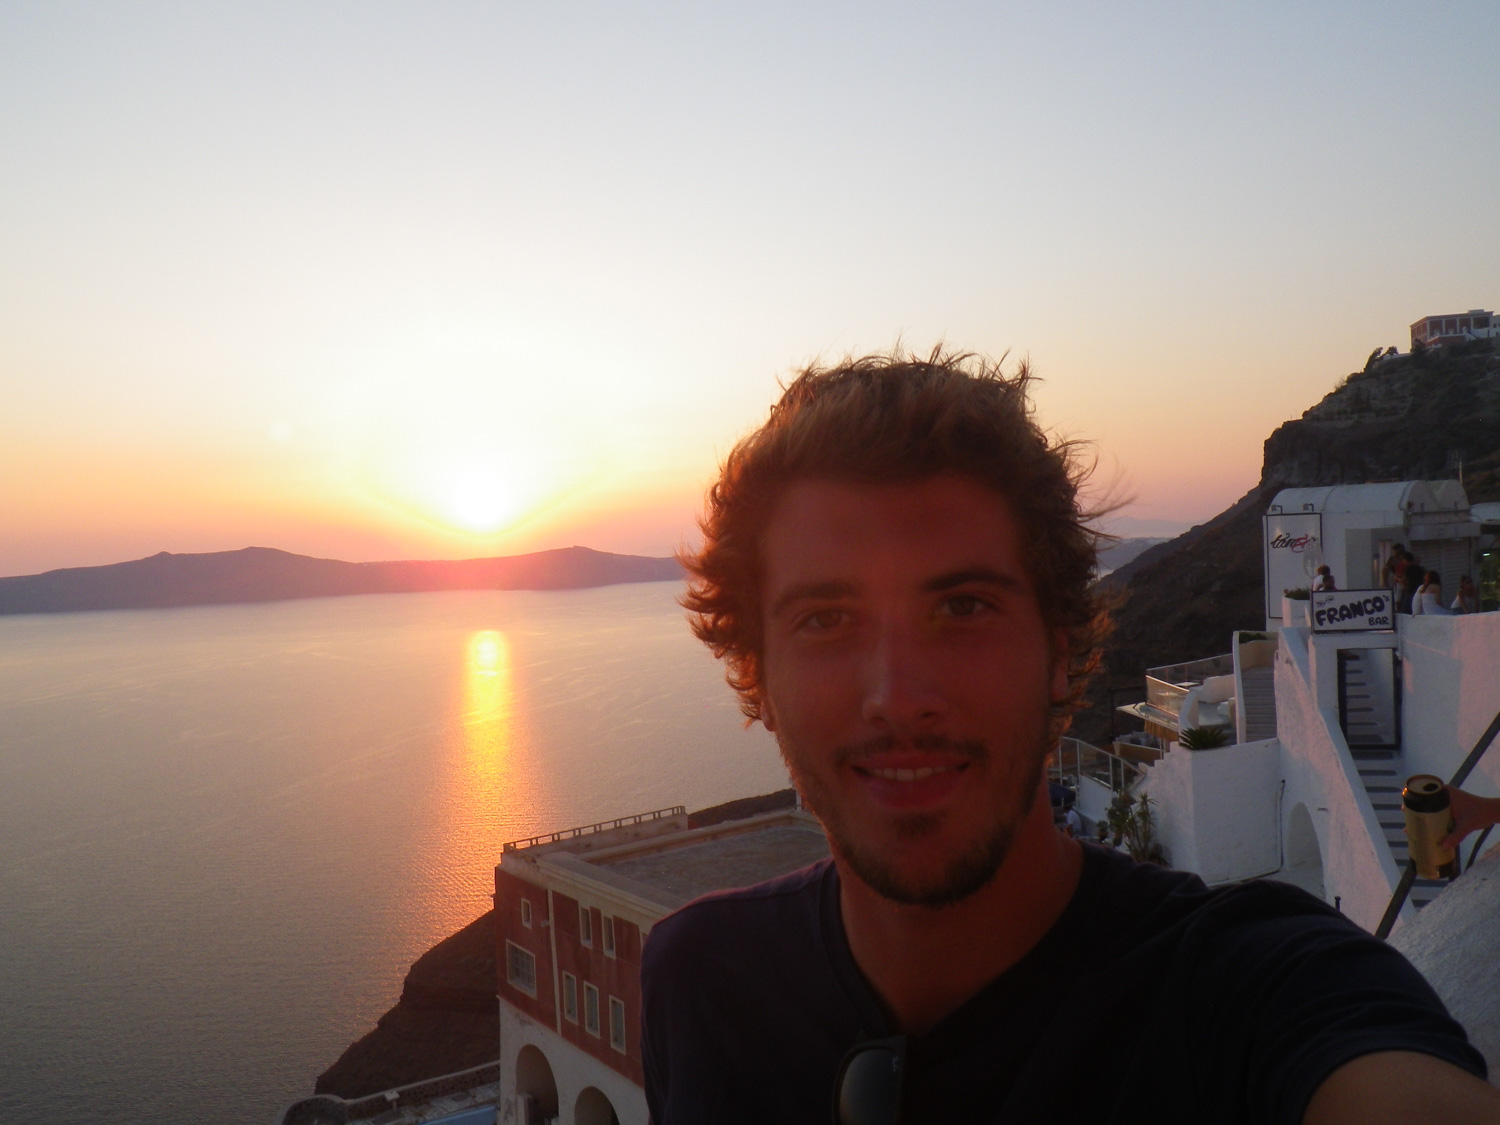 Henry in Greece. Photo Courtesy of Henry nelson.